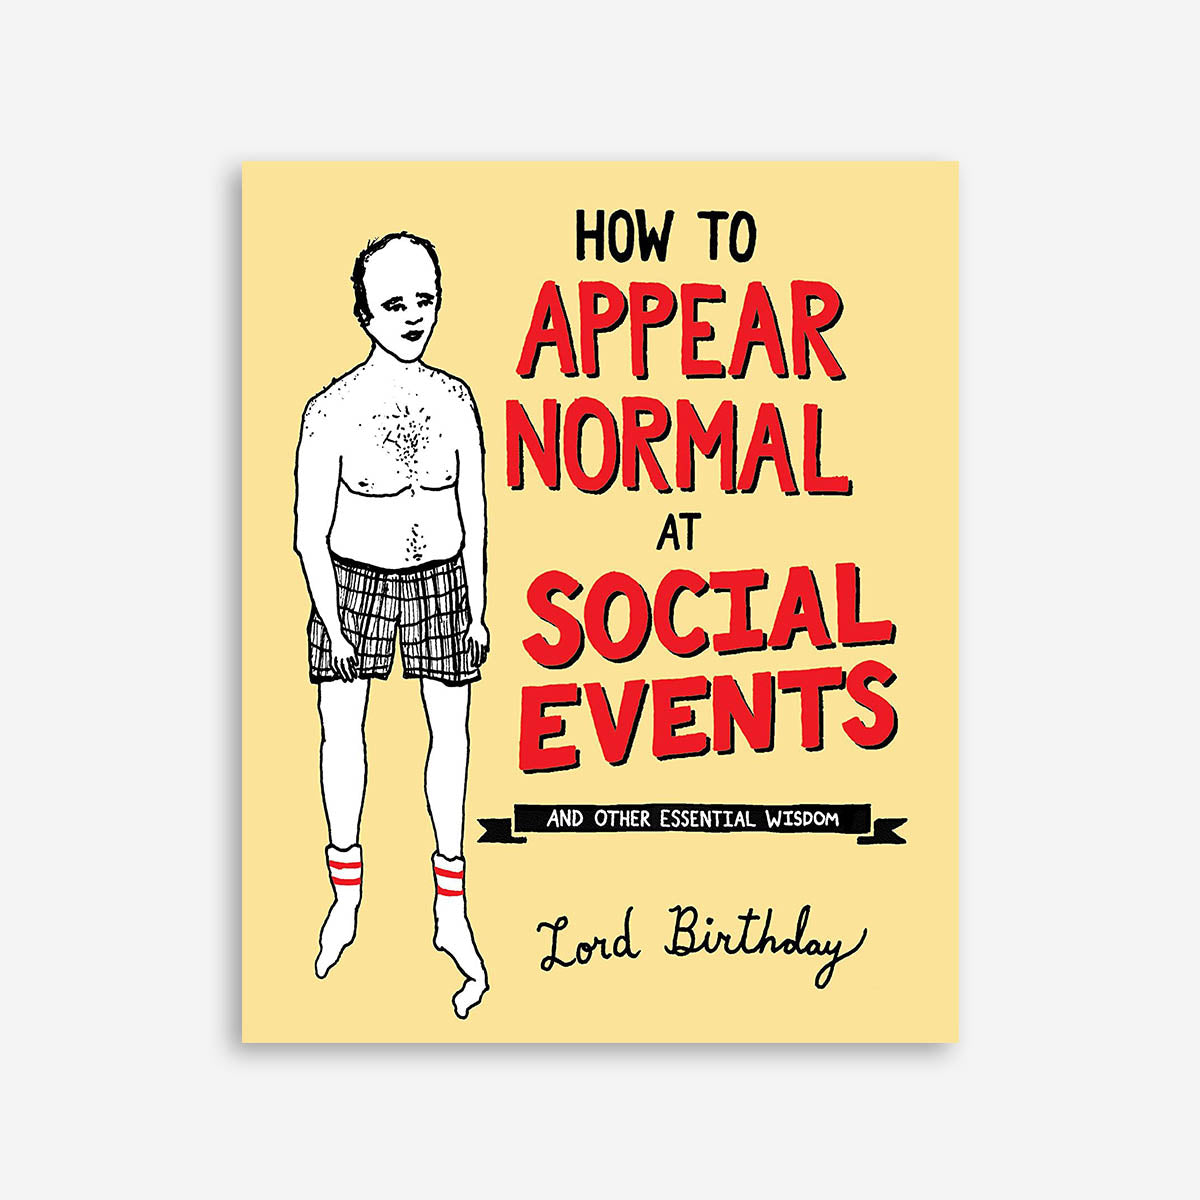 How To Appear Normal At Social Events – Essential Wisdom